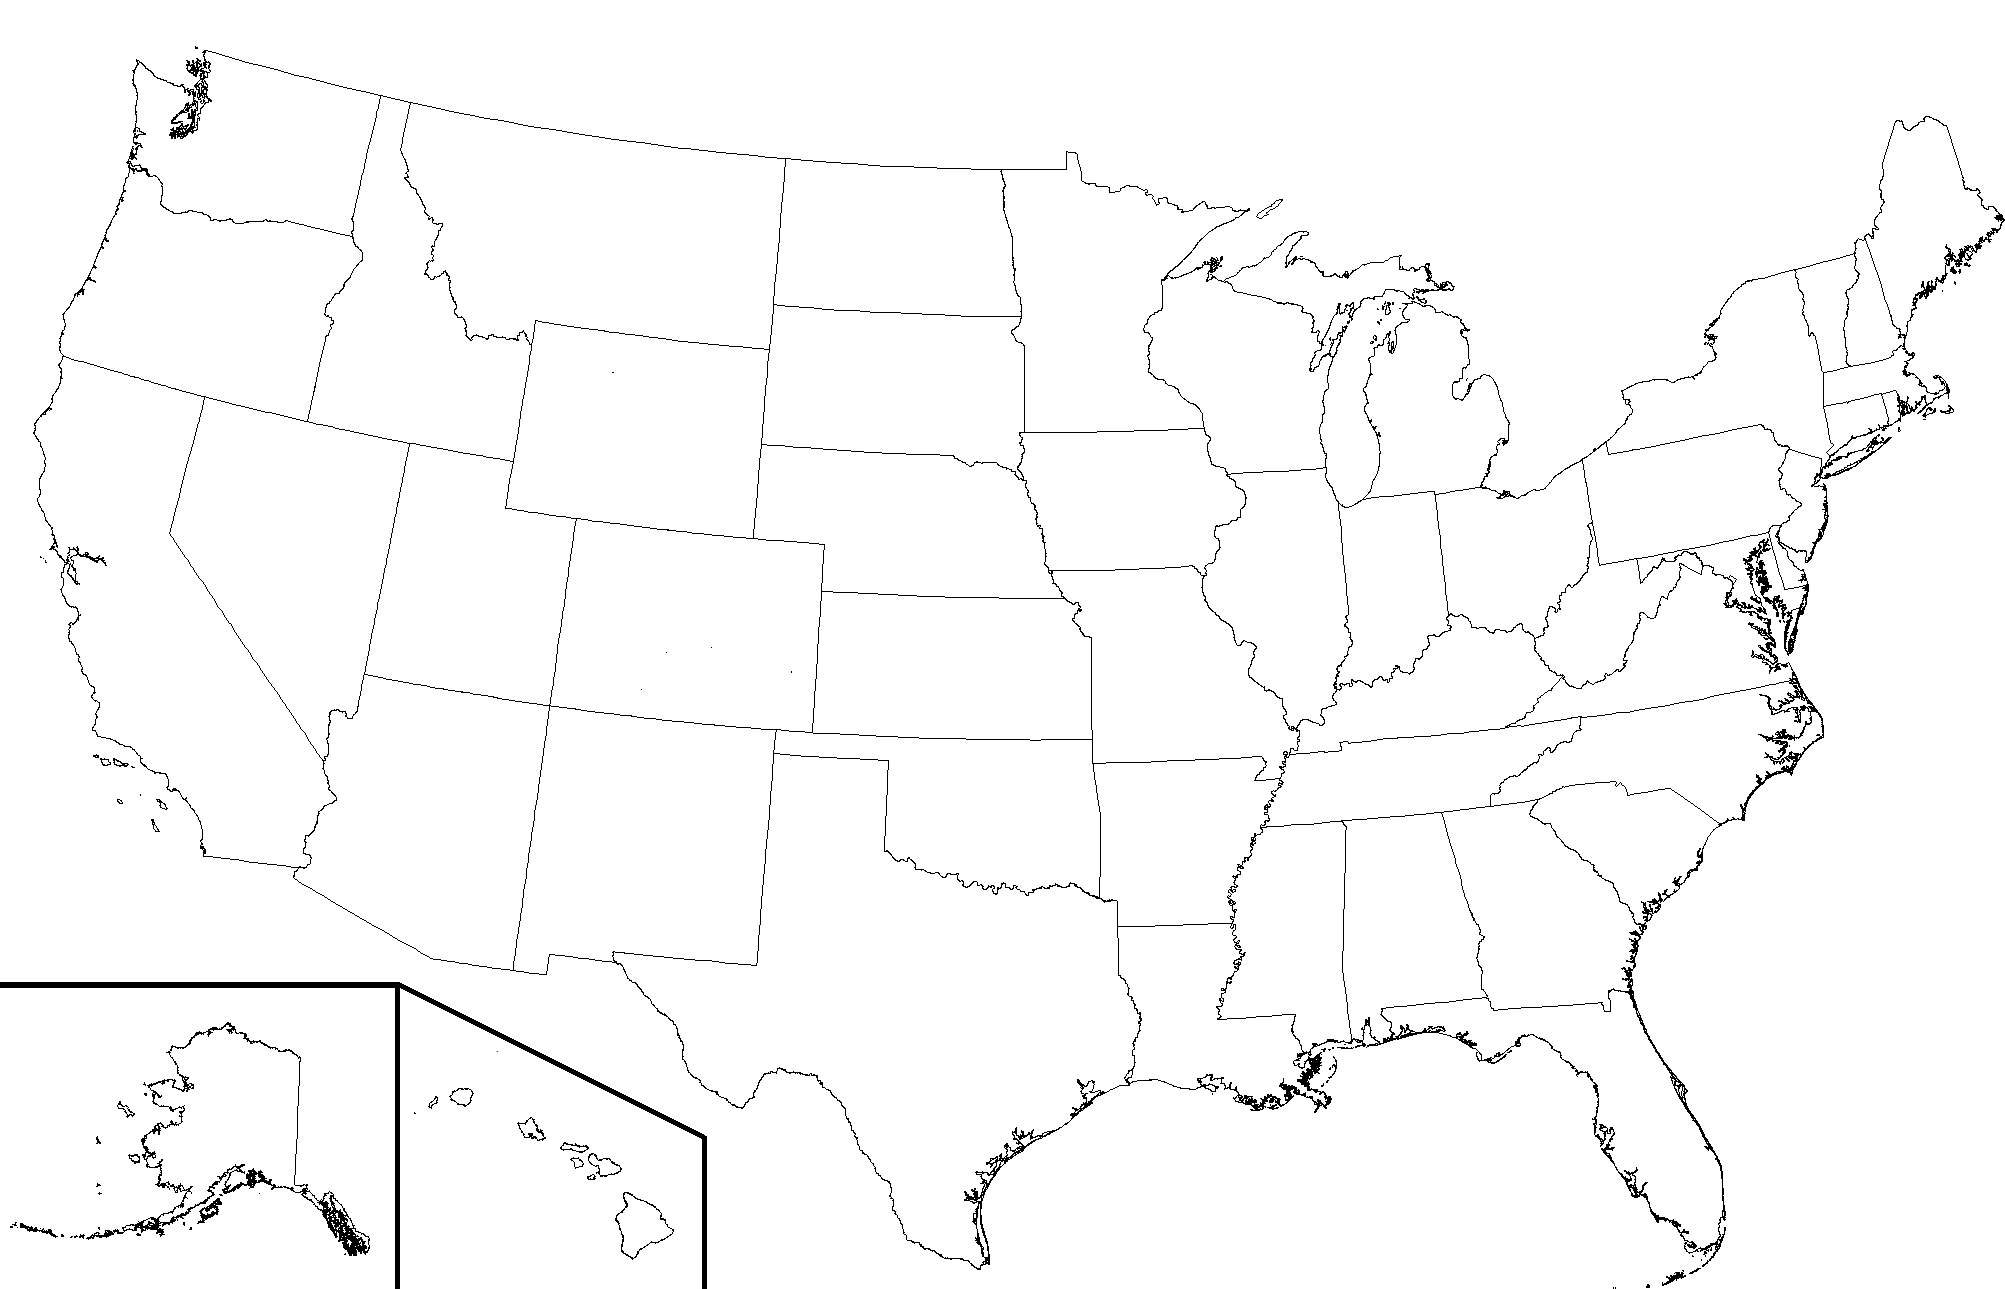 12 Blank Usa Map Vector United States Images